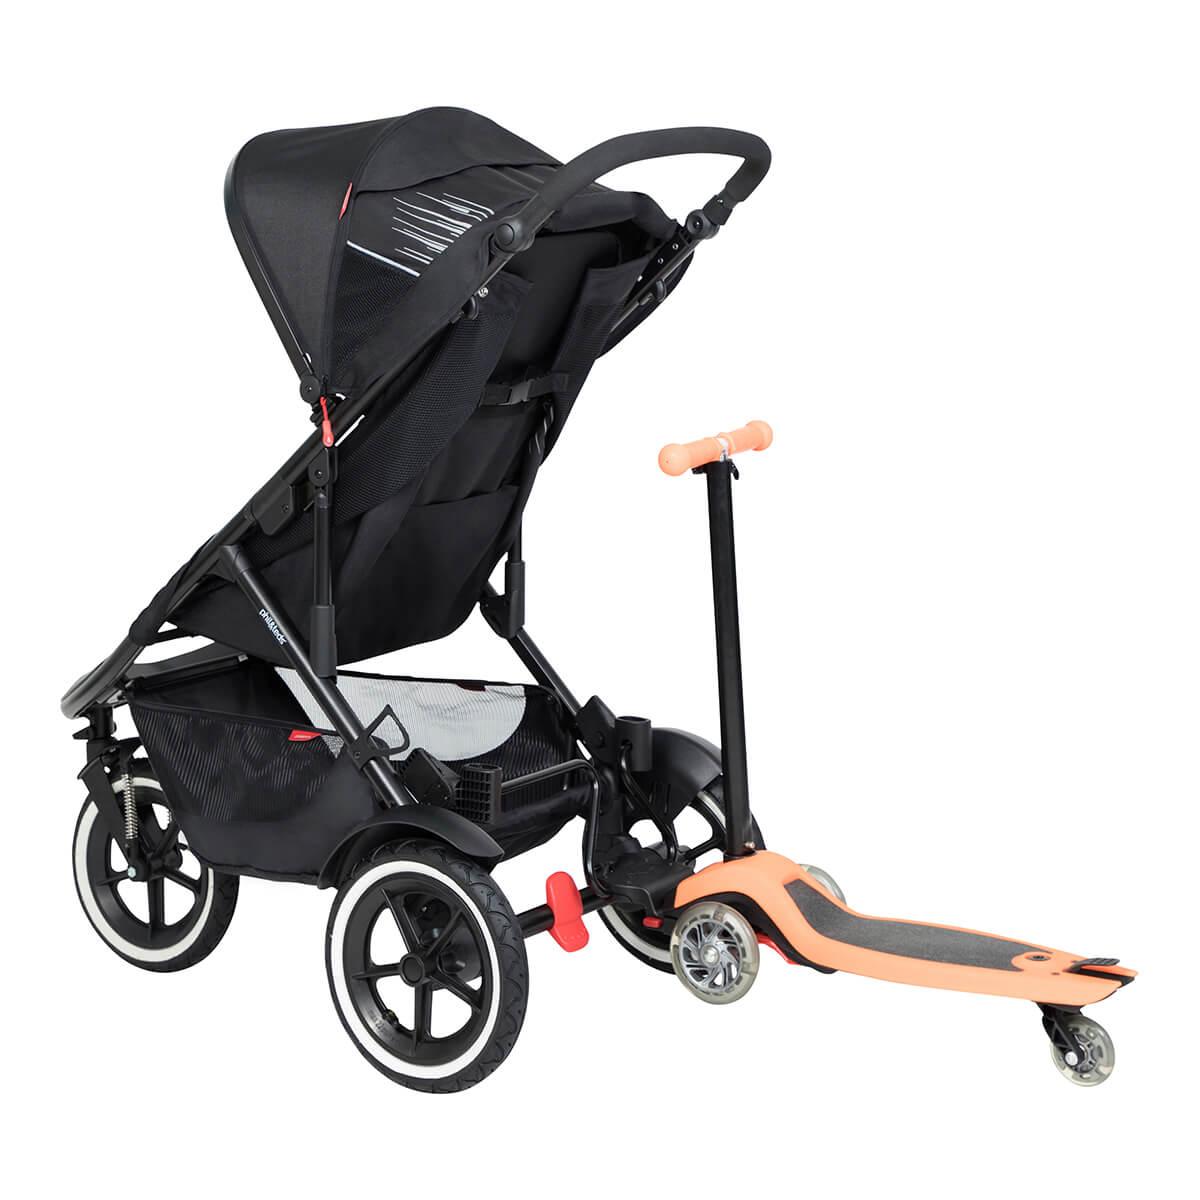 https://cdn.accentuate.io/4546158133353/19119322824809/philteds-sport-buggy-with-freerider-stroller-board-in-rear-v1625778404785.jpg?1200x1200